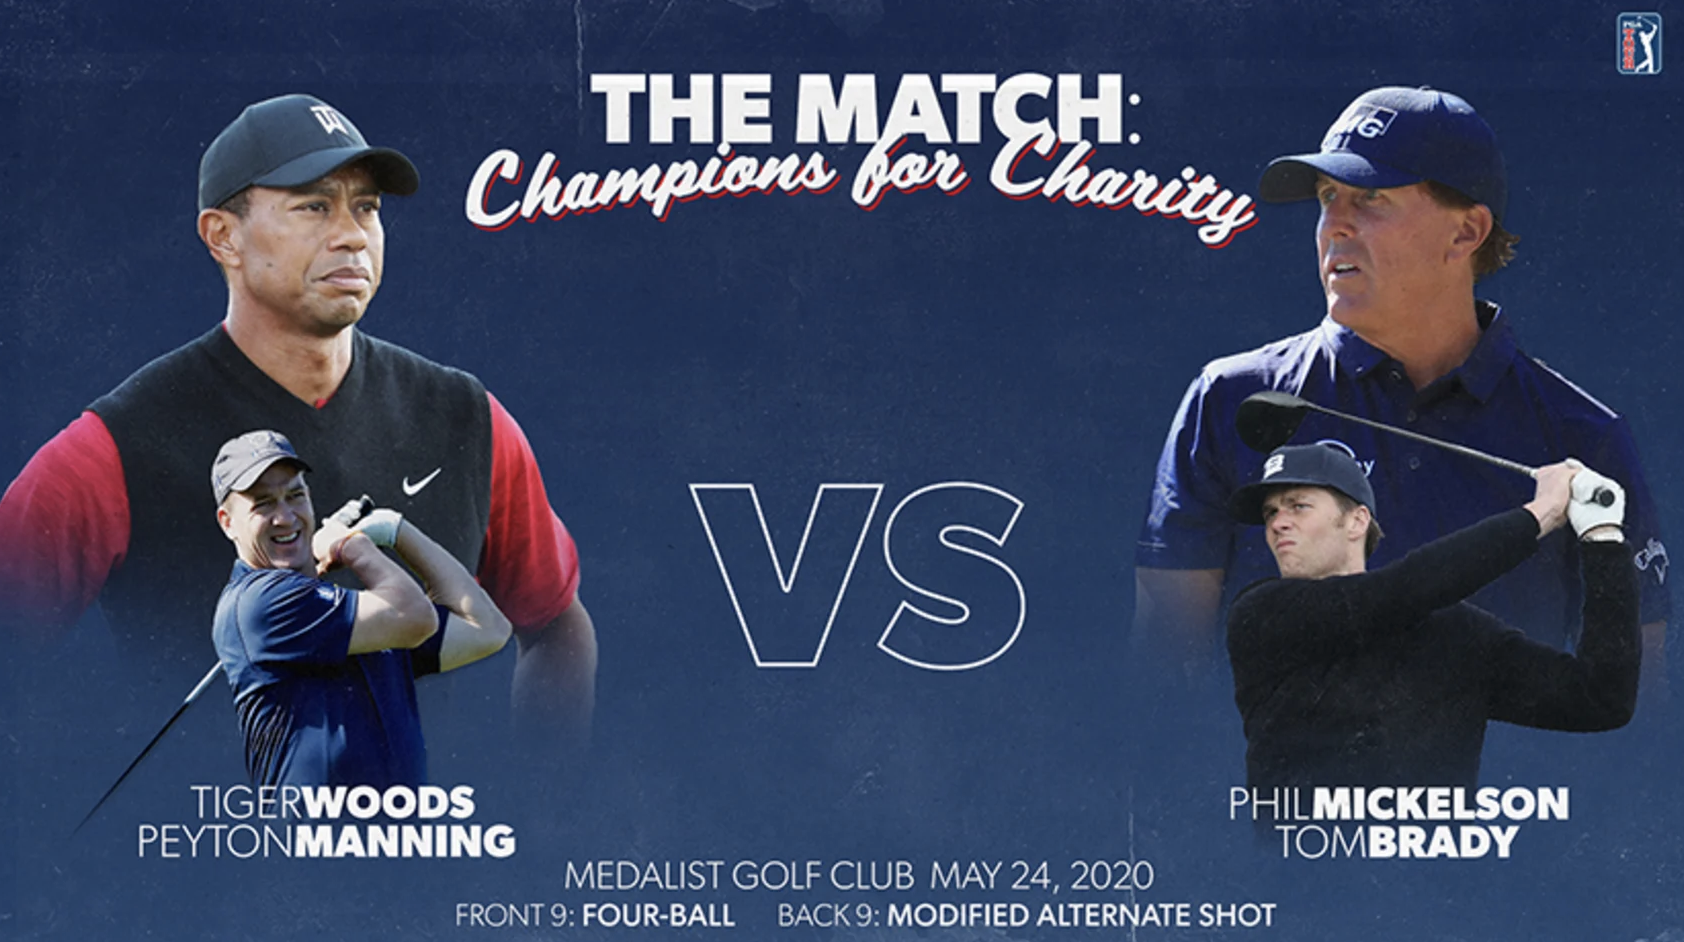 Tiger Woods and Peyton Manning Take On Phil Mickelson and Tom Brady in 'The Match: Champions for Charity' with $10M to be Donated to Fight Coronavirus